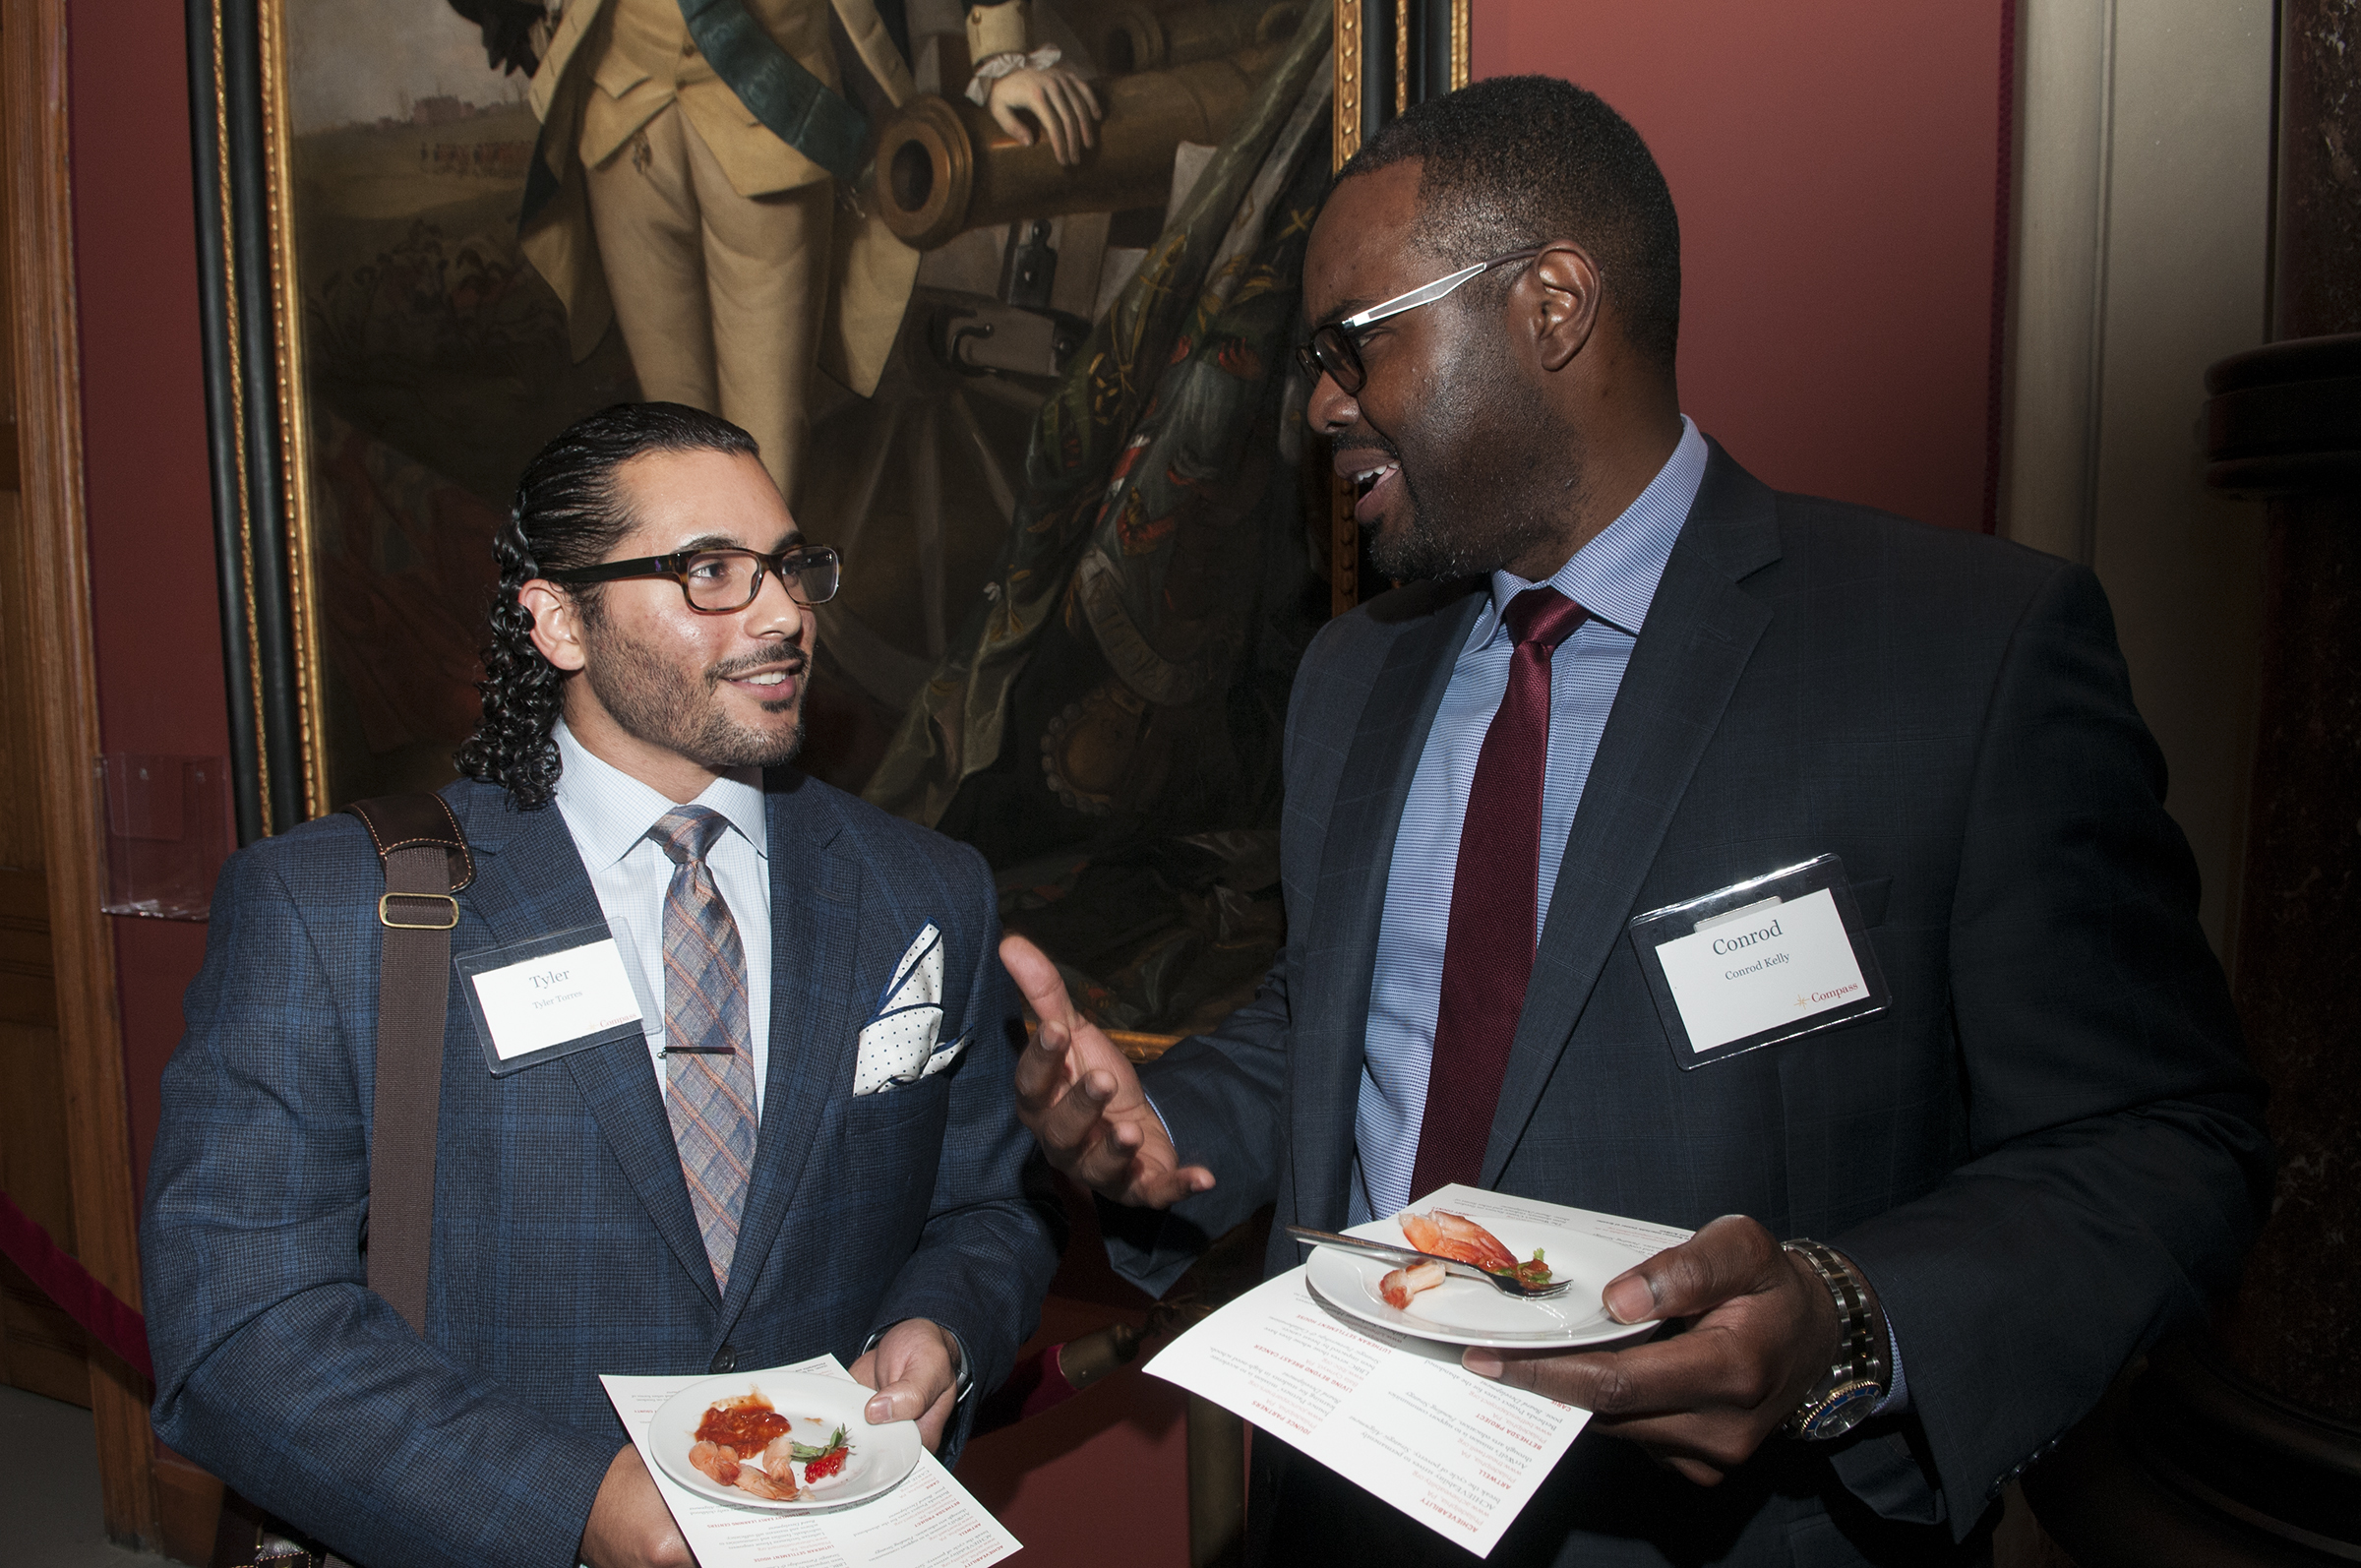 Tyler Torres (left) attended Compass´ Project Launch at the Pennsylvania Academy of Fine Arts on Sept. 28, hoping he is selected as a Compass volunteer for the 2017-18 project cycle. He´s talking with another attendee, Conrod Kell at the meet-and-greet event.networking event. ( RAYMOND W HOLMAN JR / For the Inquirer )